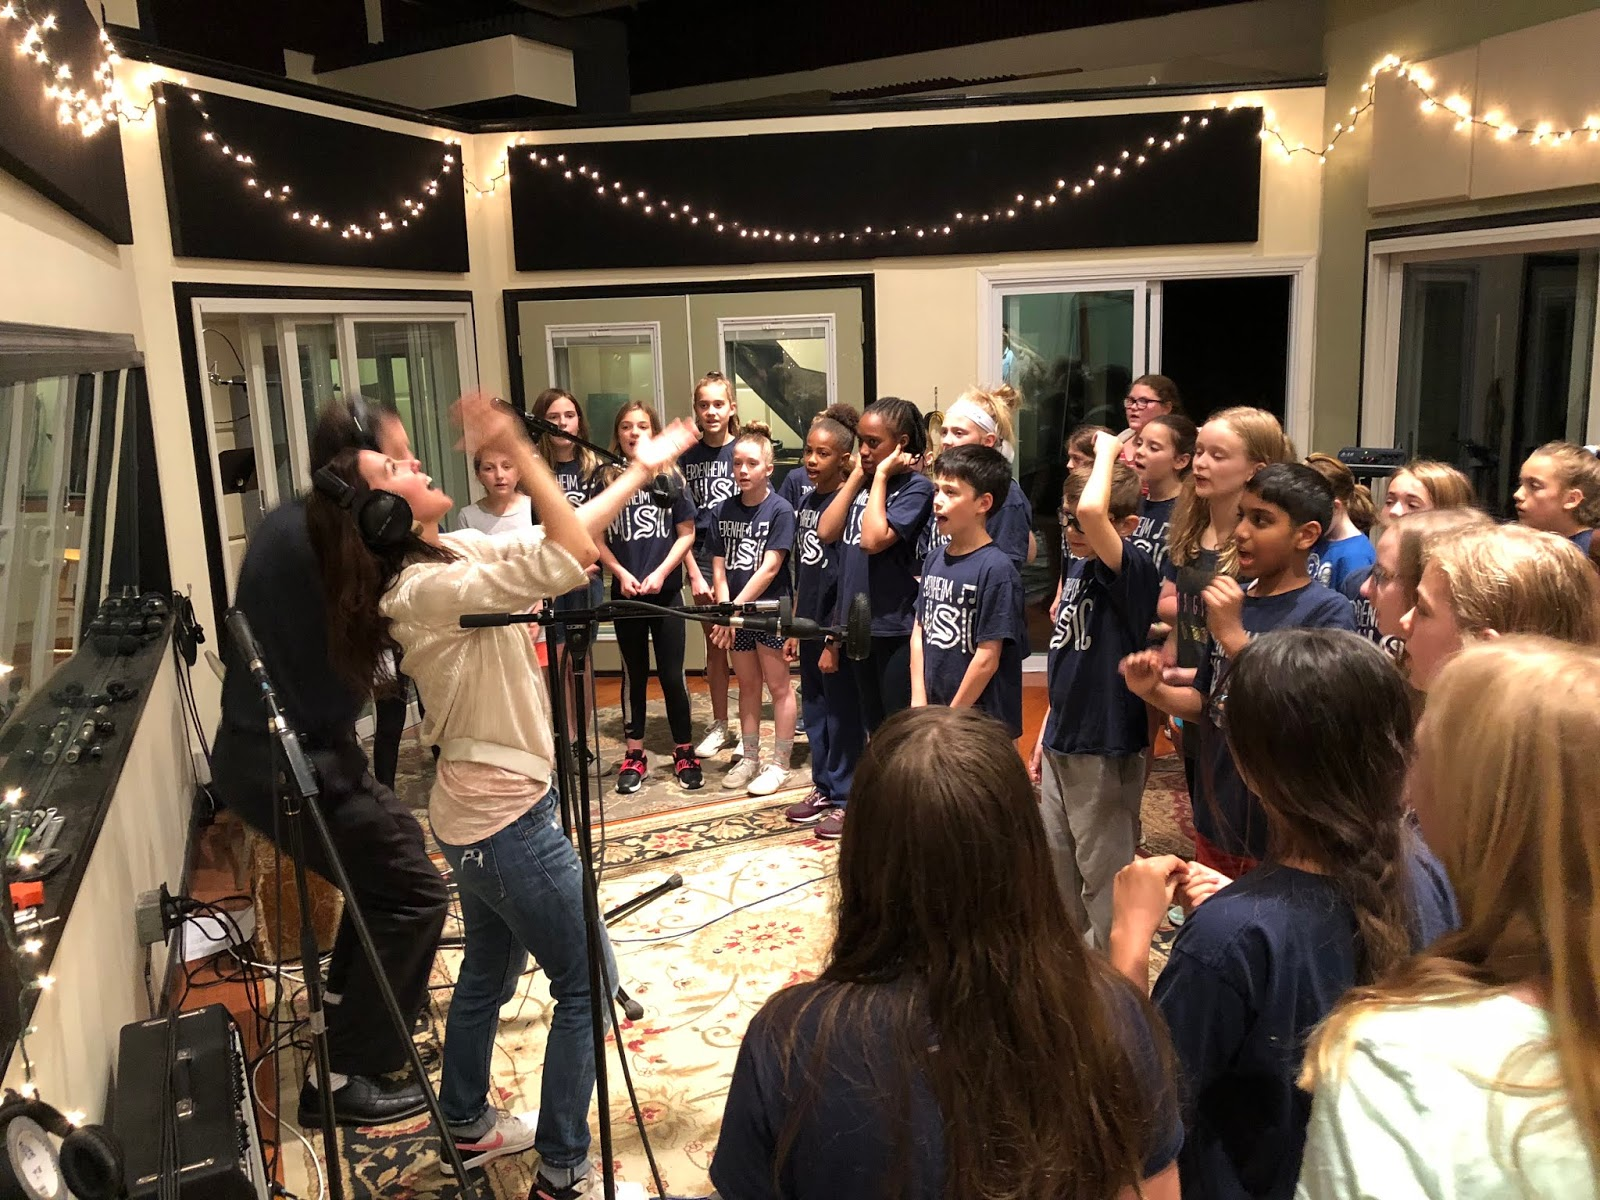 music with gina: Studio pics from 5/14!! What an incredible